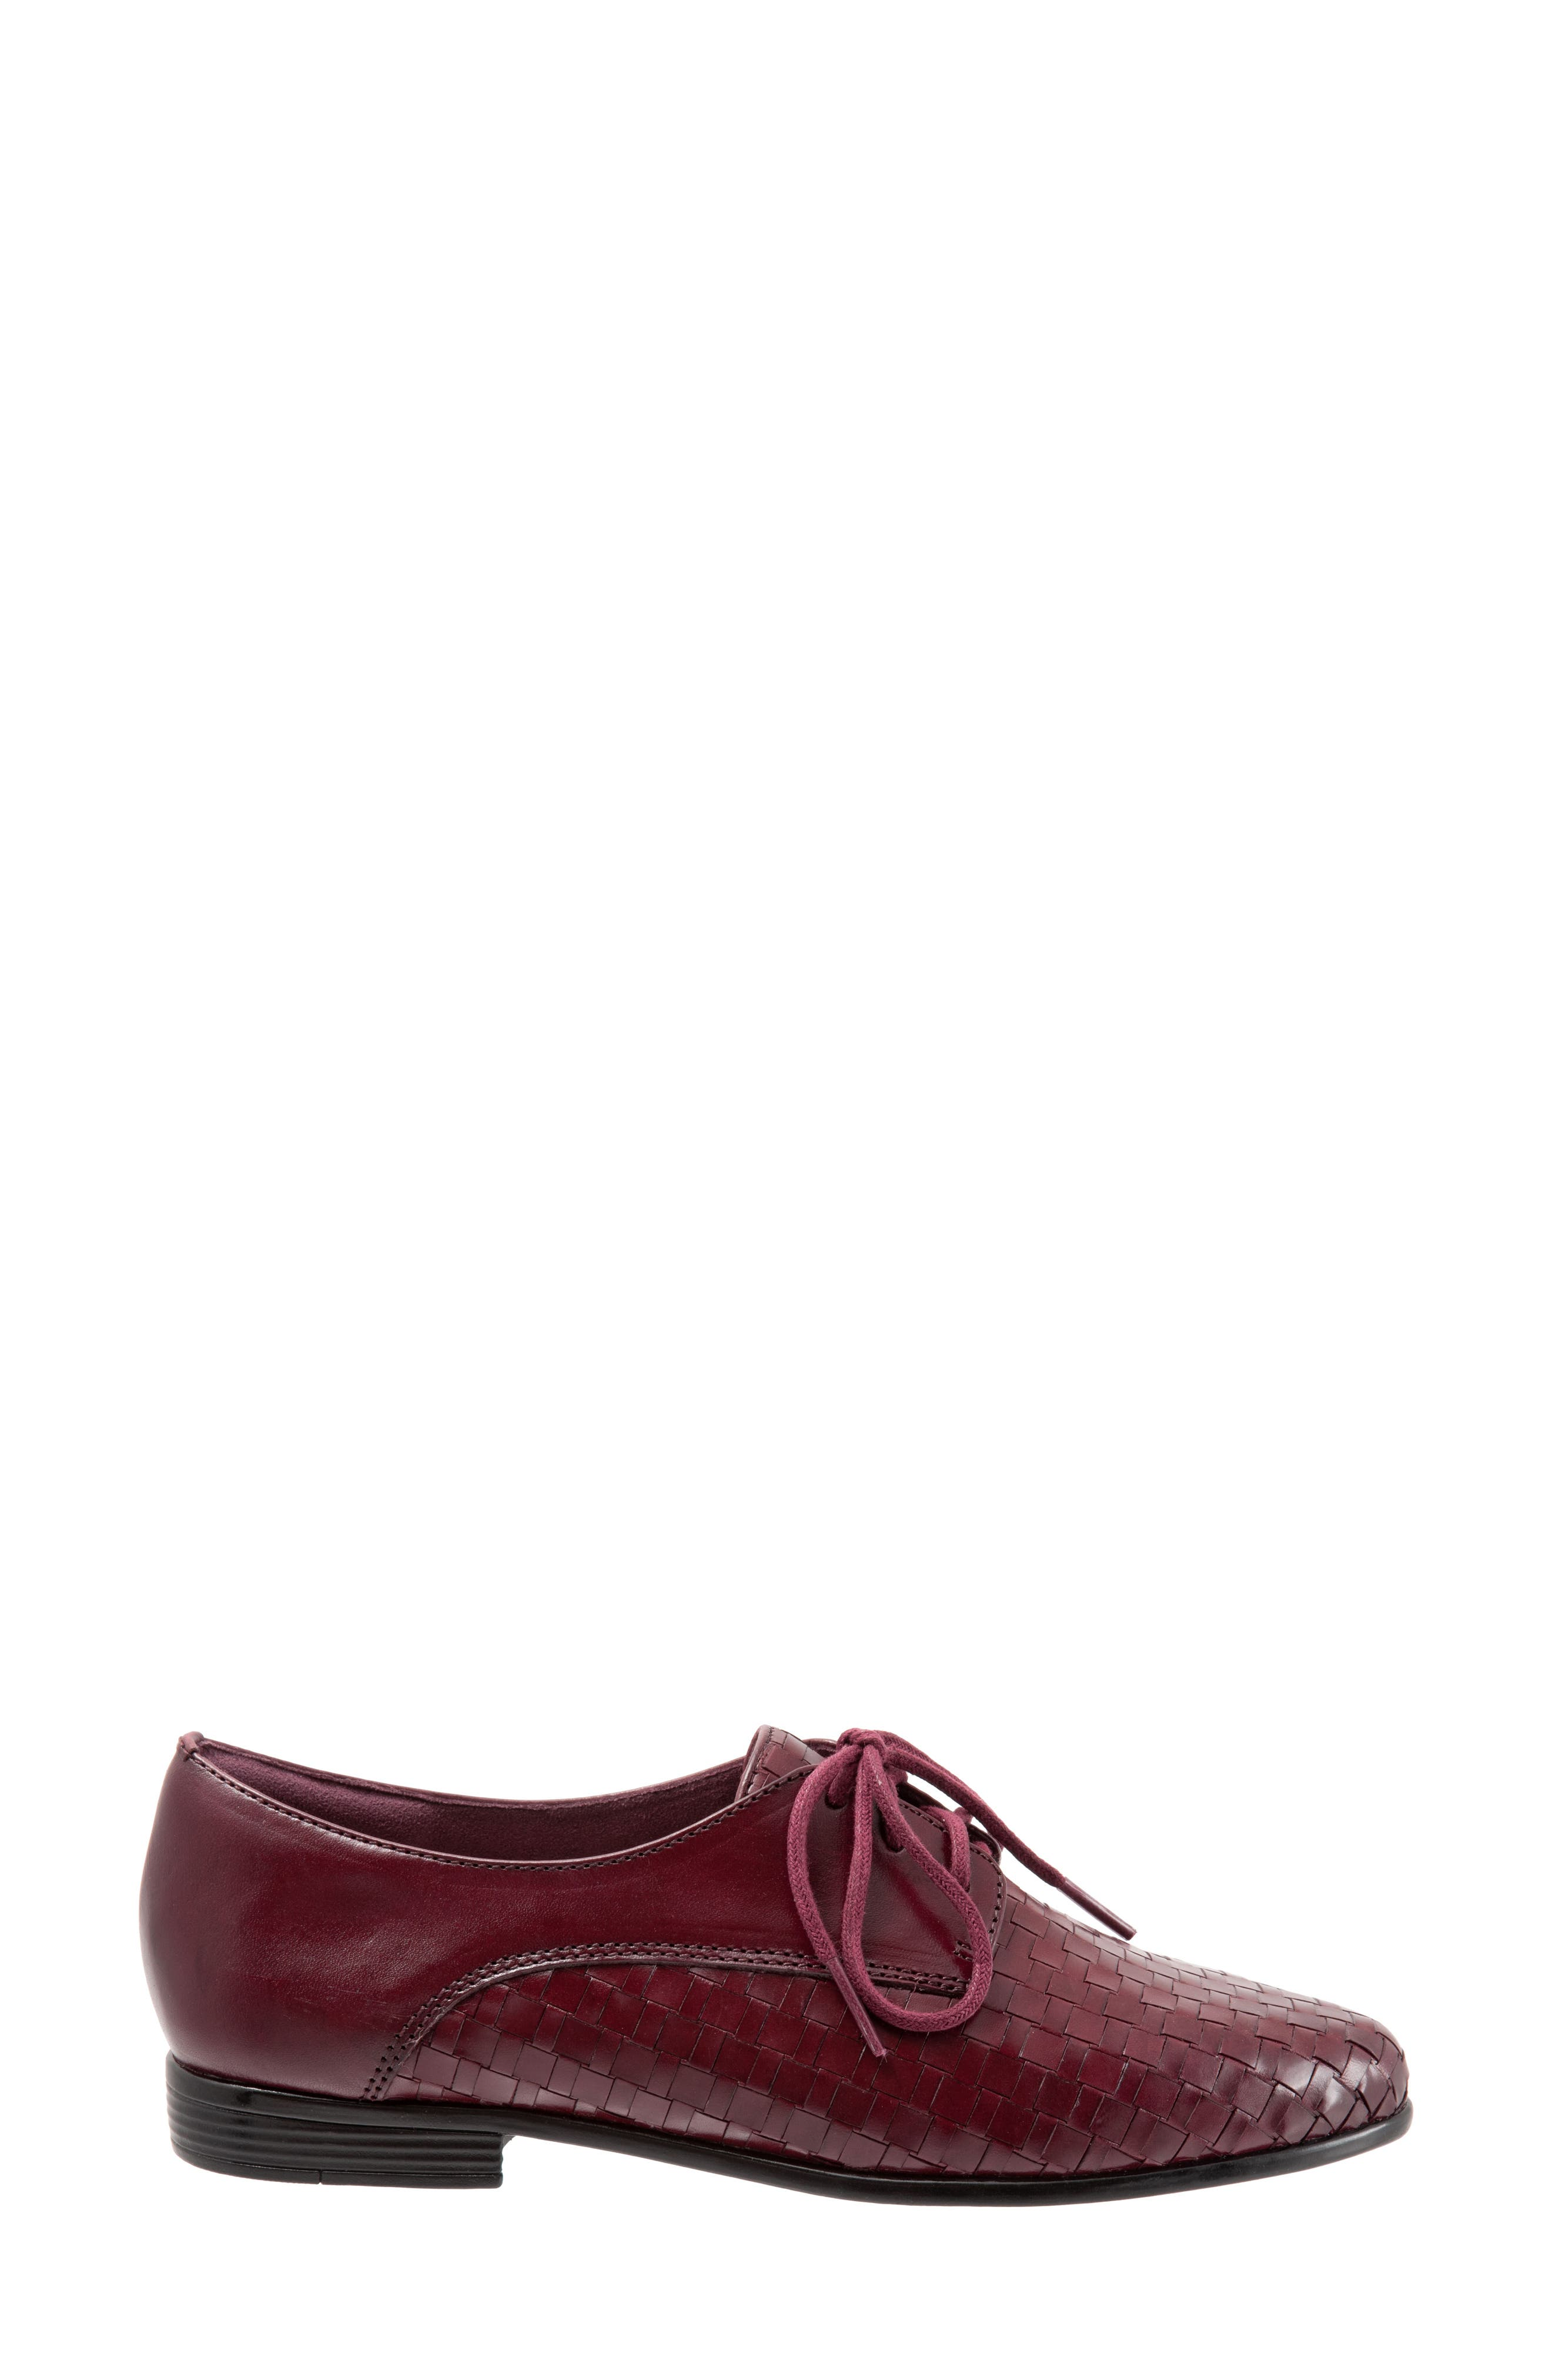 Lizzie Derby Flat,                             Alternate thumbnail 3, color,                             BLACK CHERRY LEATHER